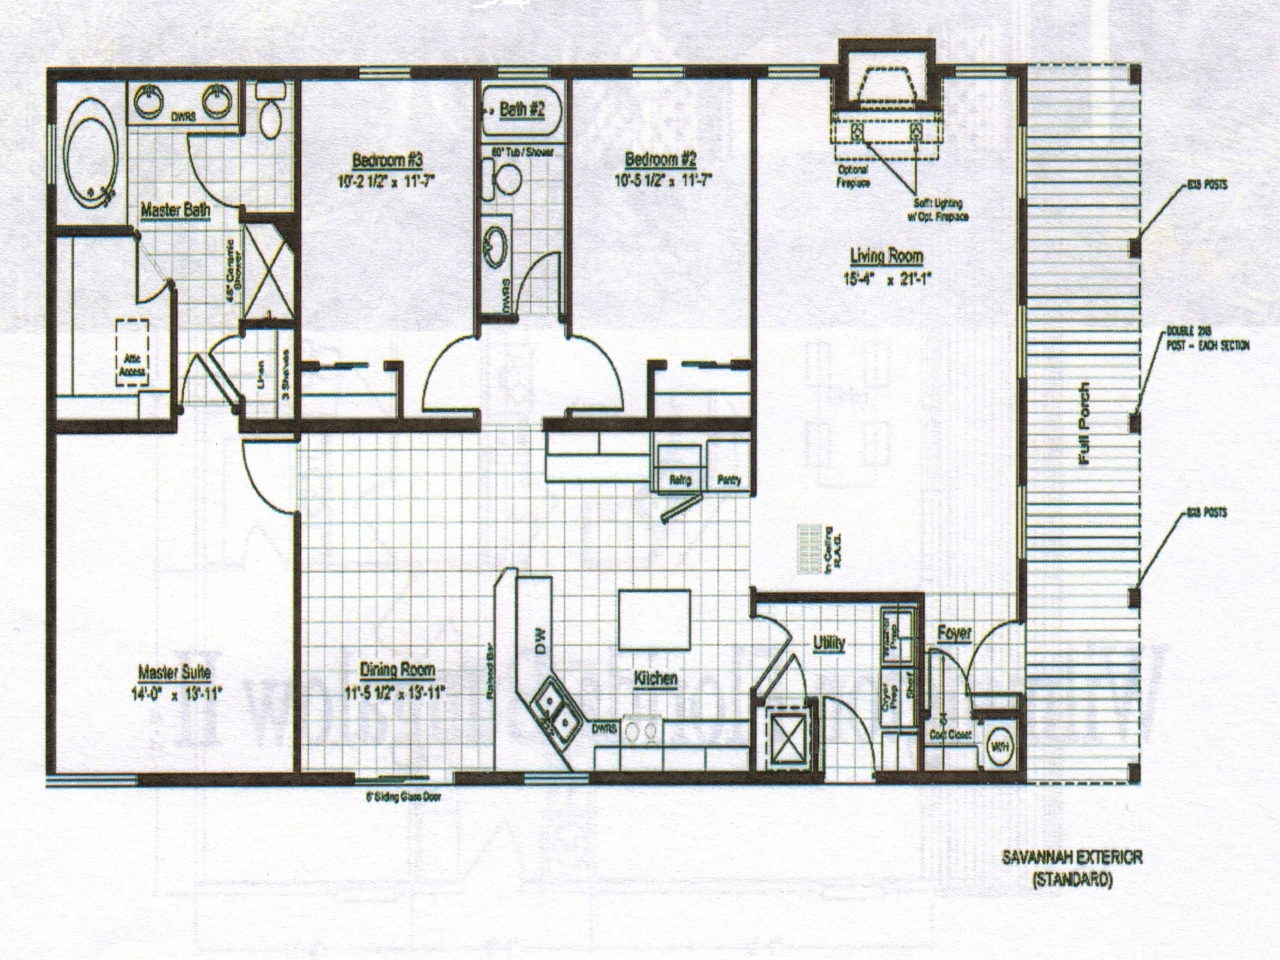 Bungalow home design floor plans bungalow house plans with for Bungalow house plans canada